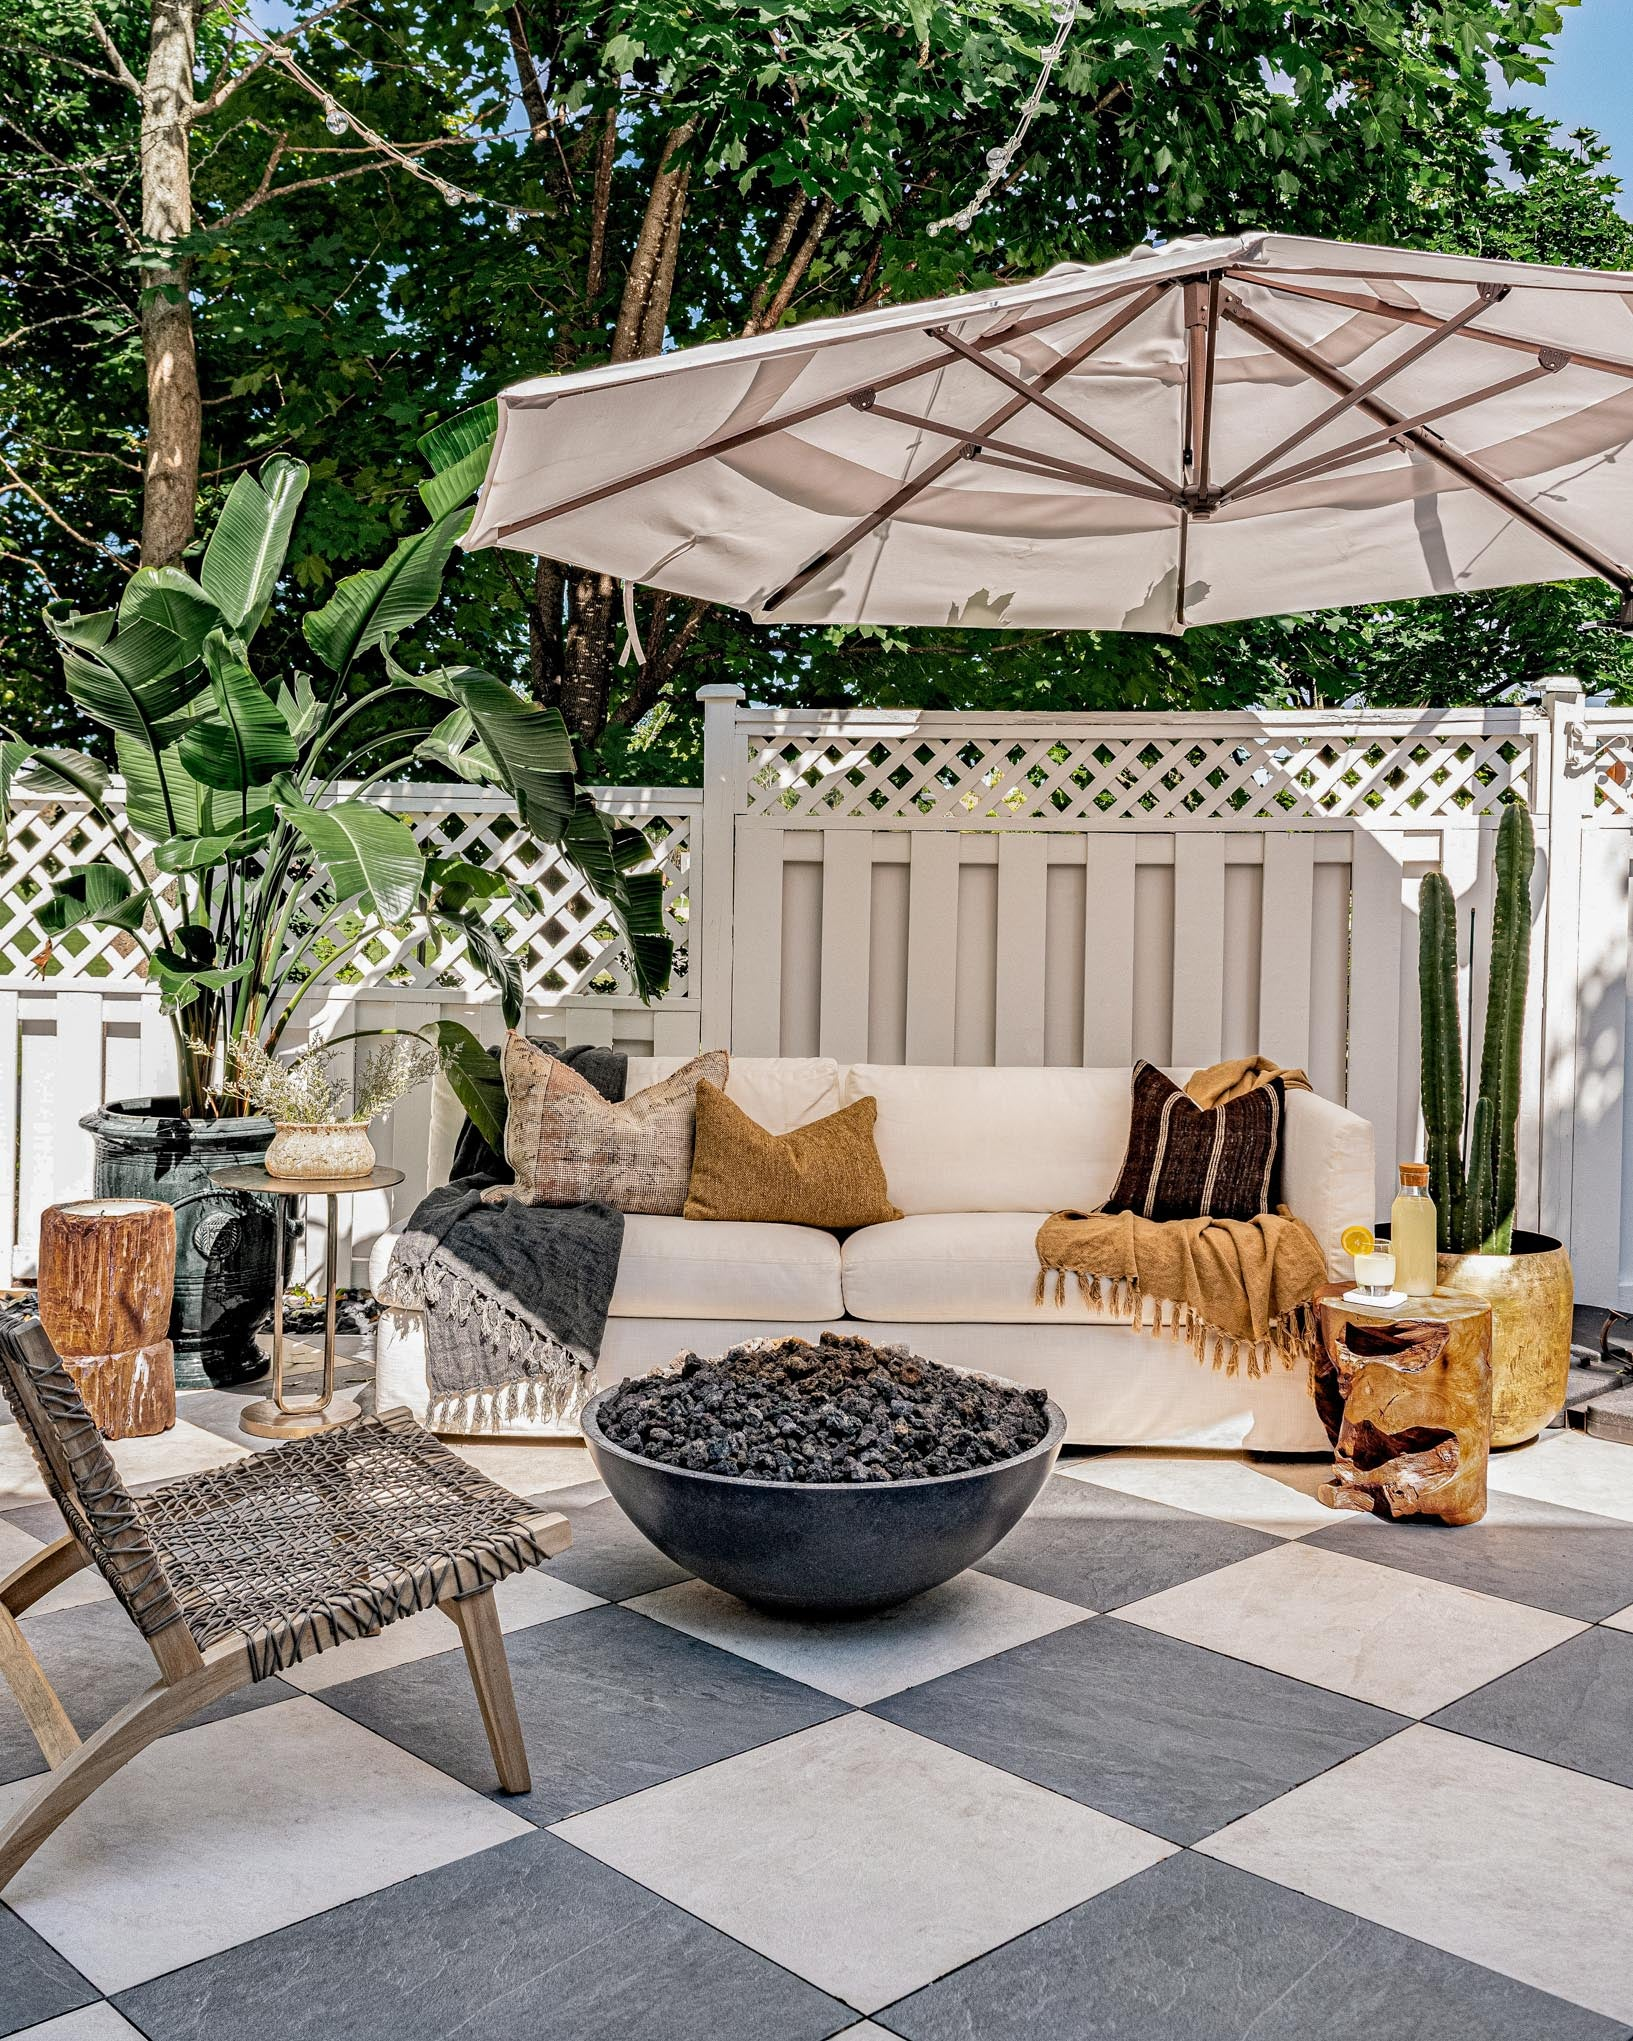 Ottawa Interior Design firm, West of Main, reveals beautiful urban backyard transformation, outdoor seating area.